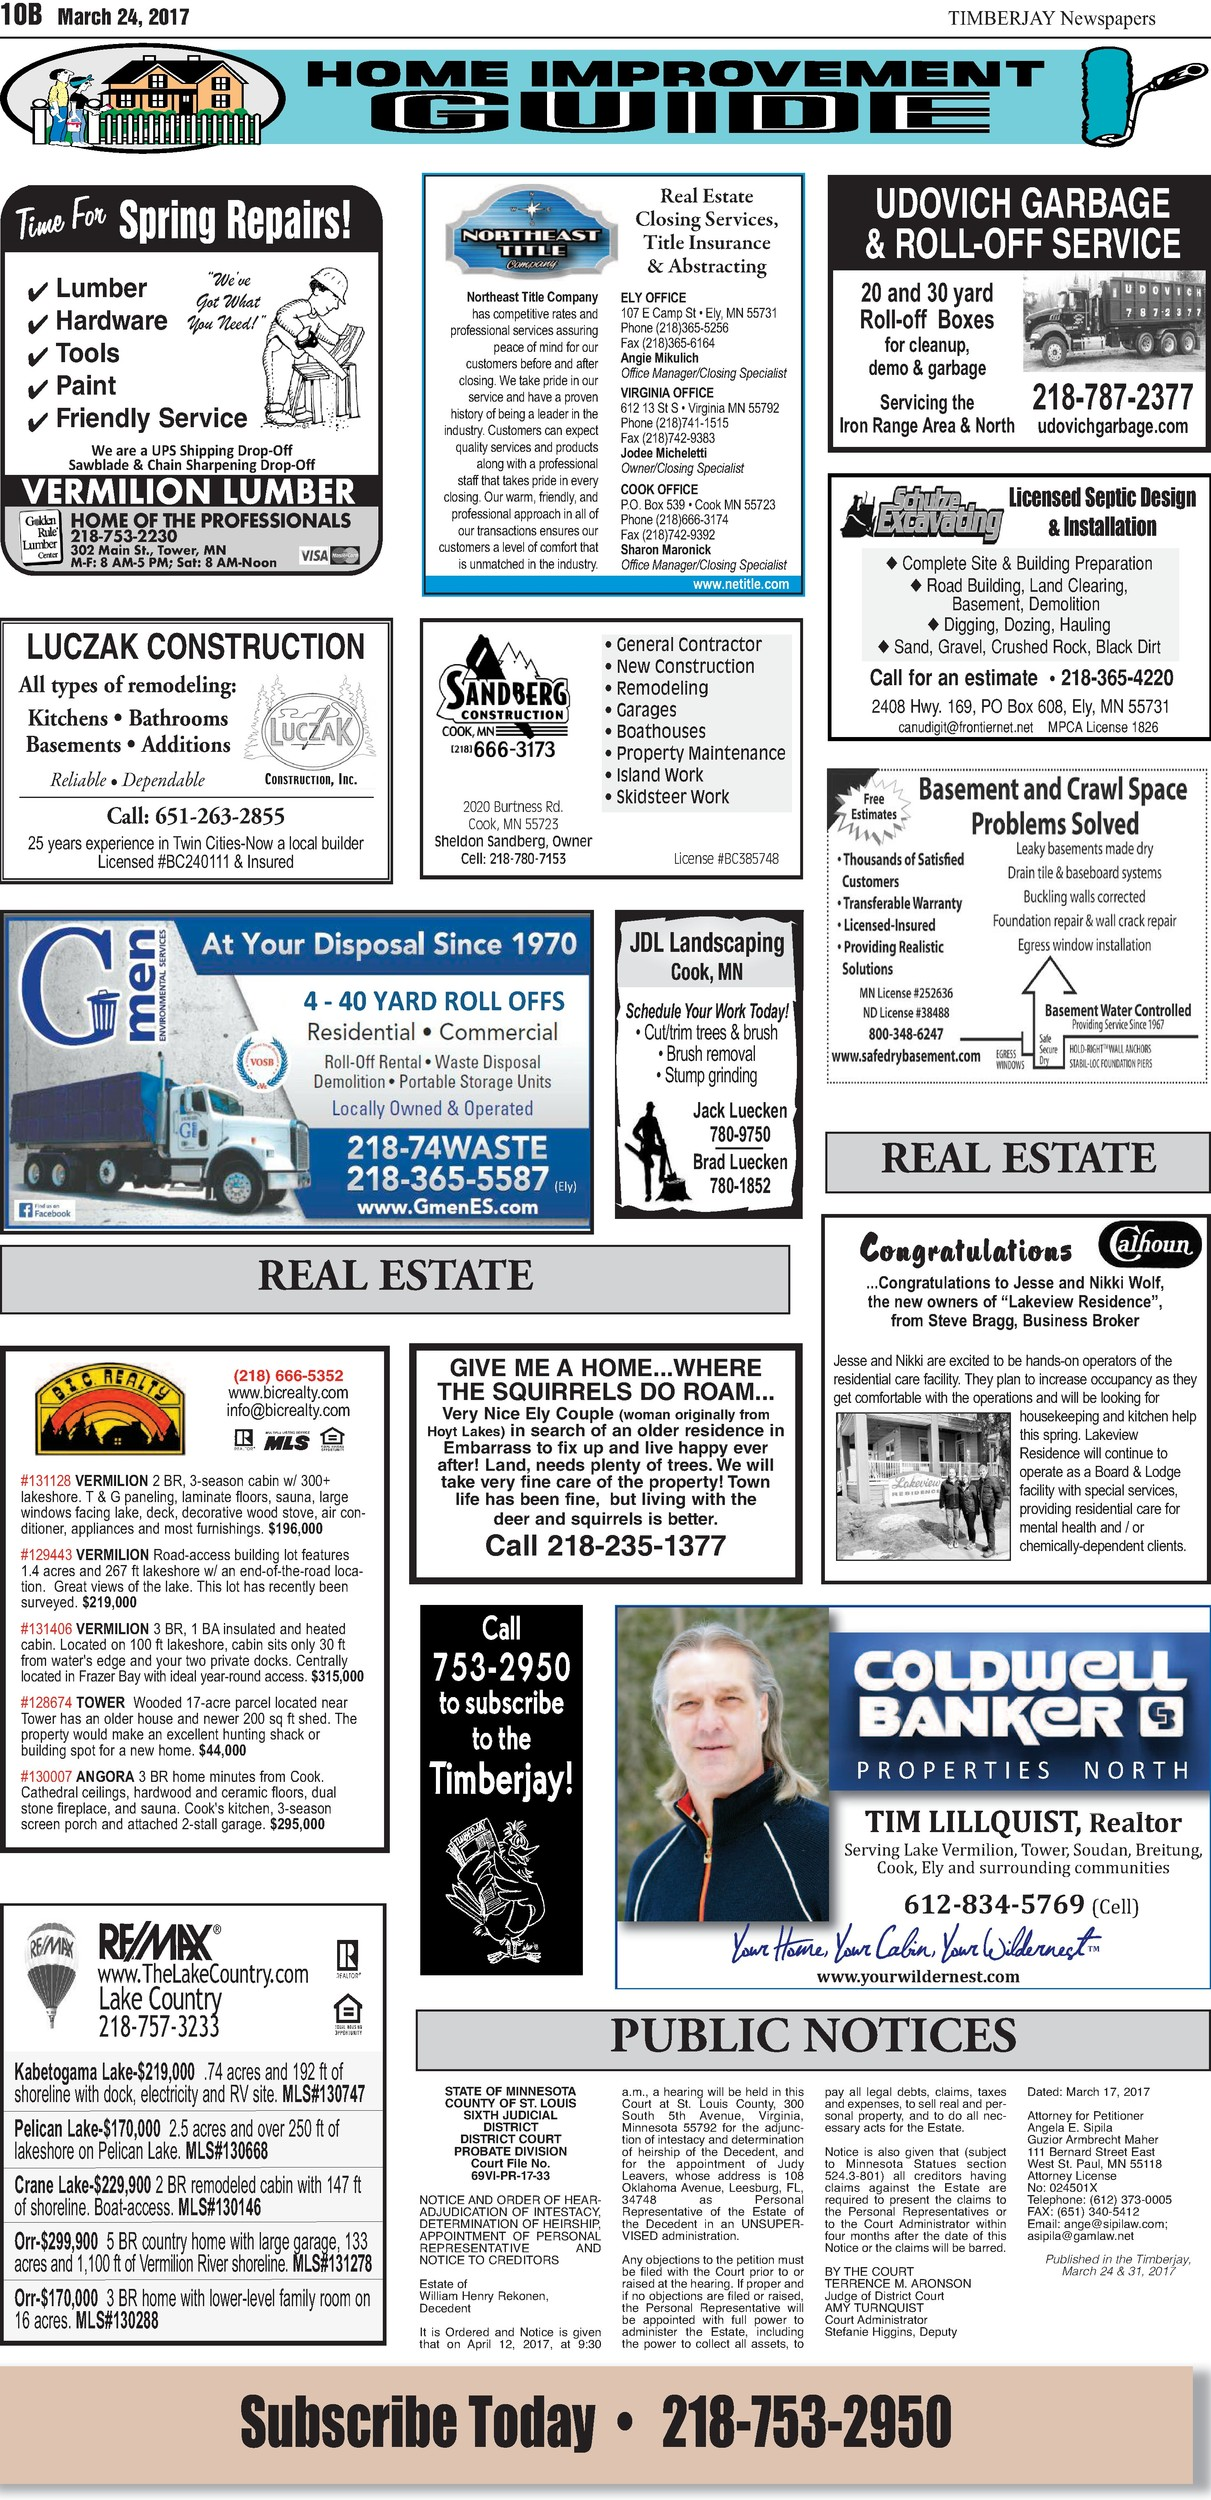 Click here to view the legal notices and classifieds on page 10B